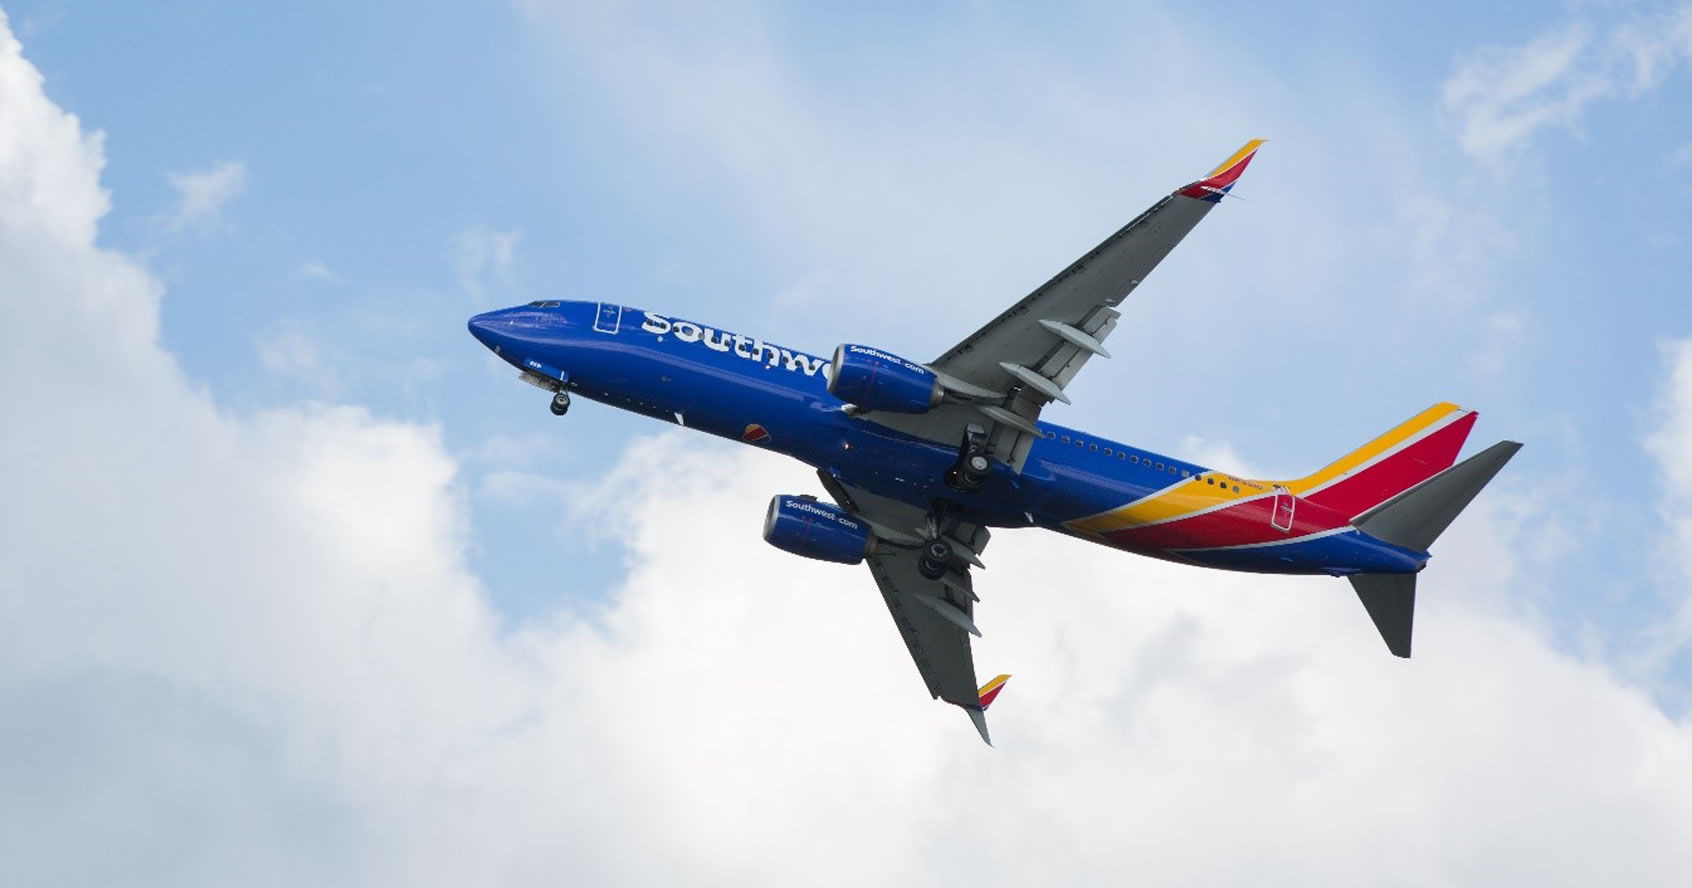 Southwest Is Celebrating Its 50th Anniversary With Tons of Giveaways All Month Long